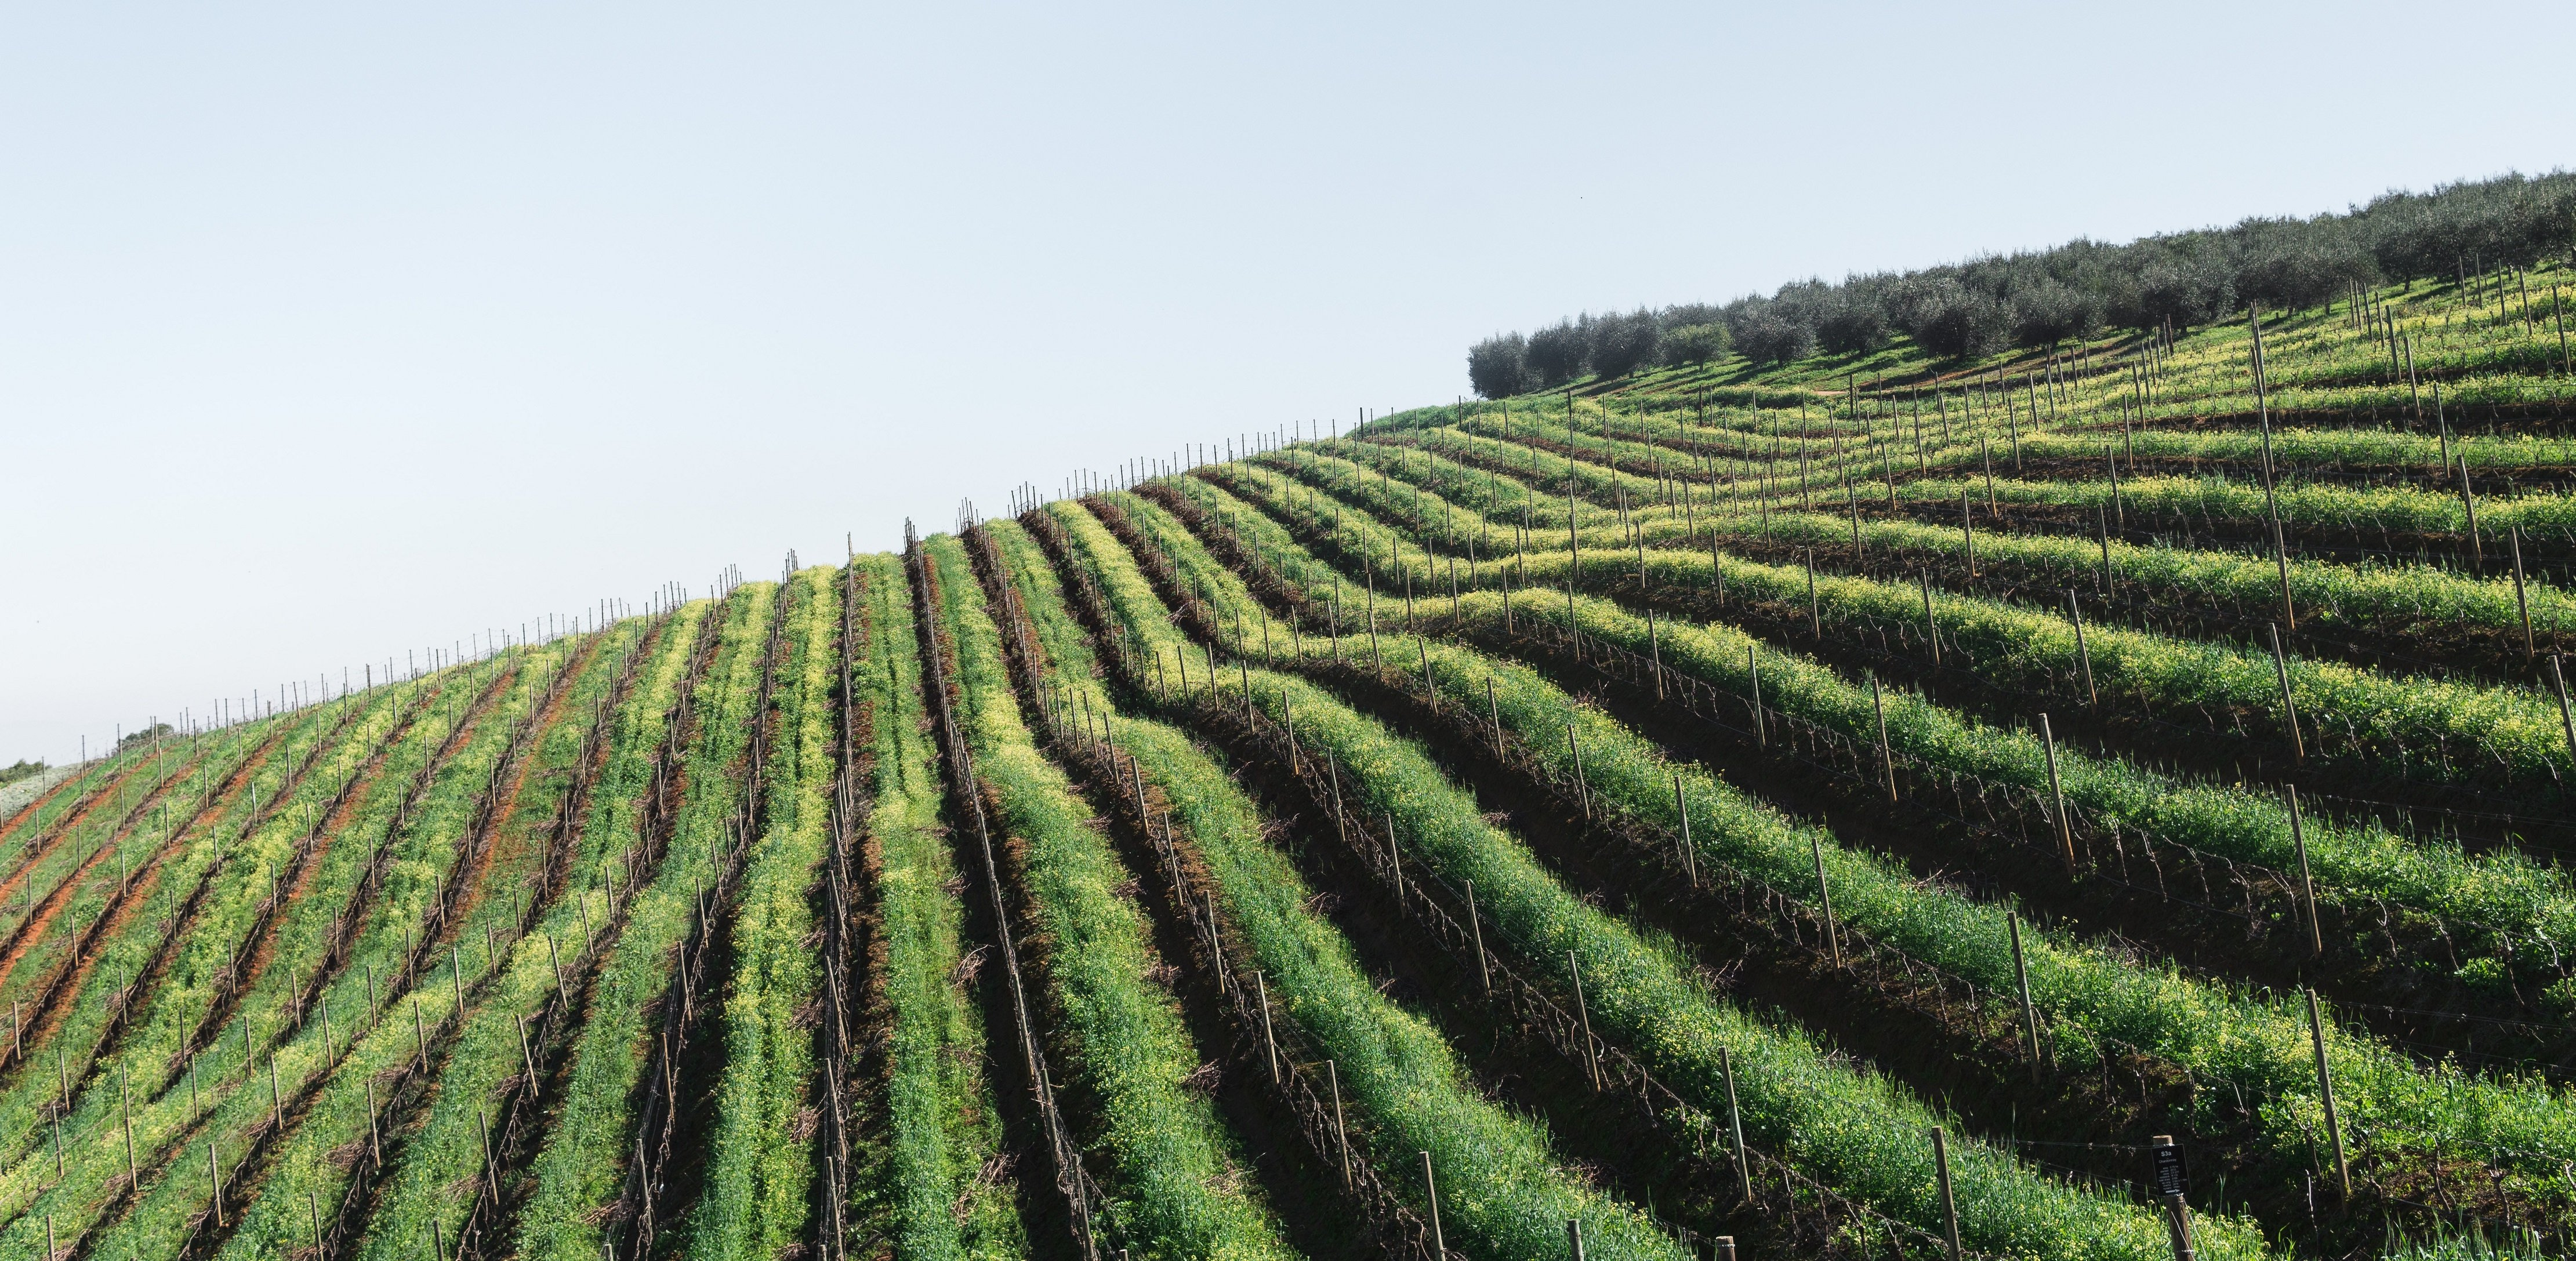 Vineyard & Wine Business For Sale